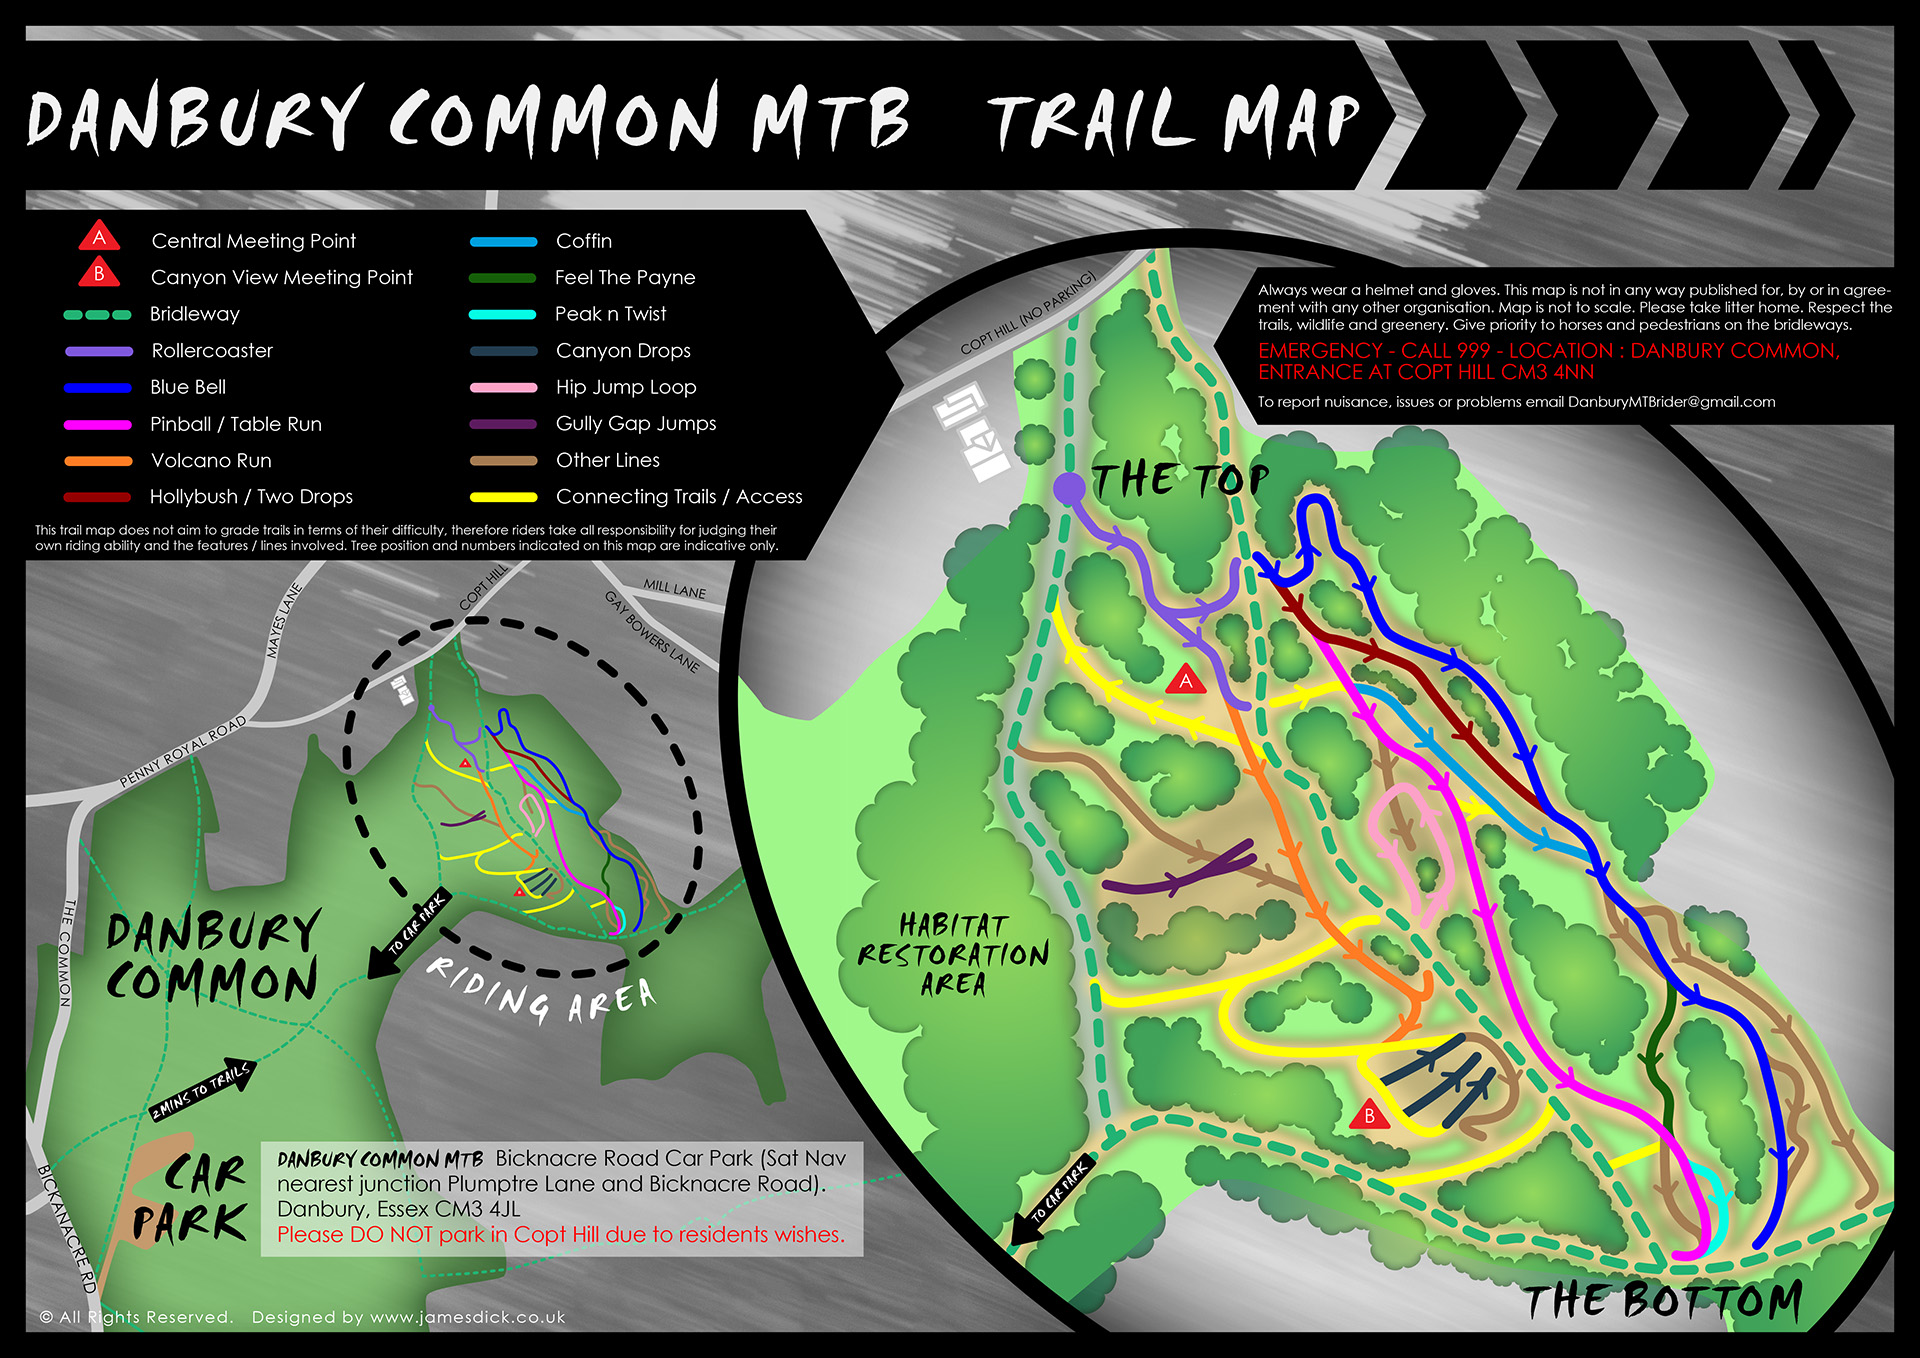 Danbury Common MTB trail map 007 highest